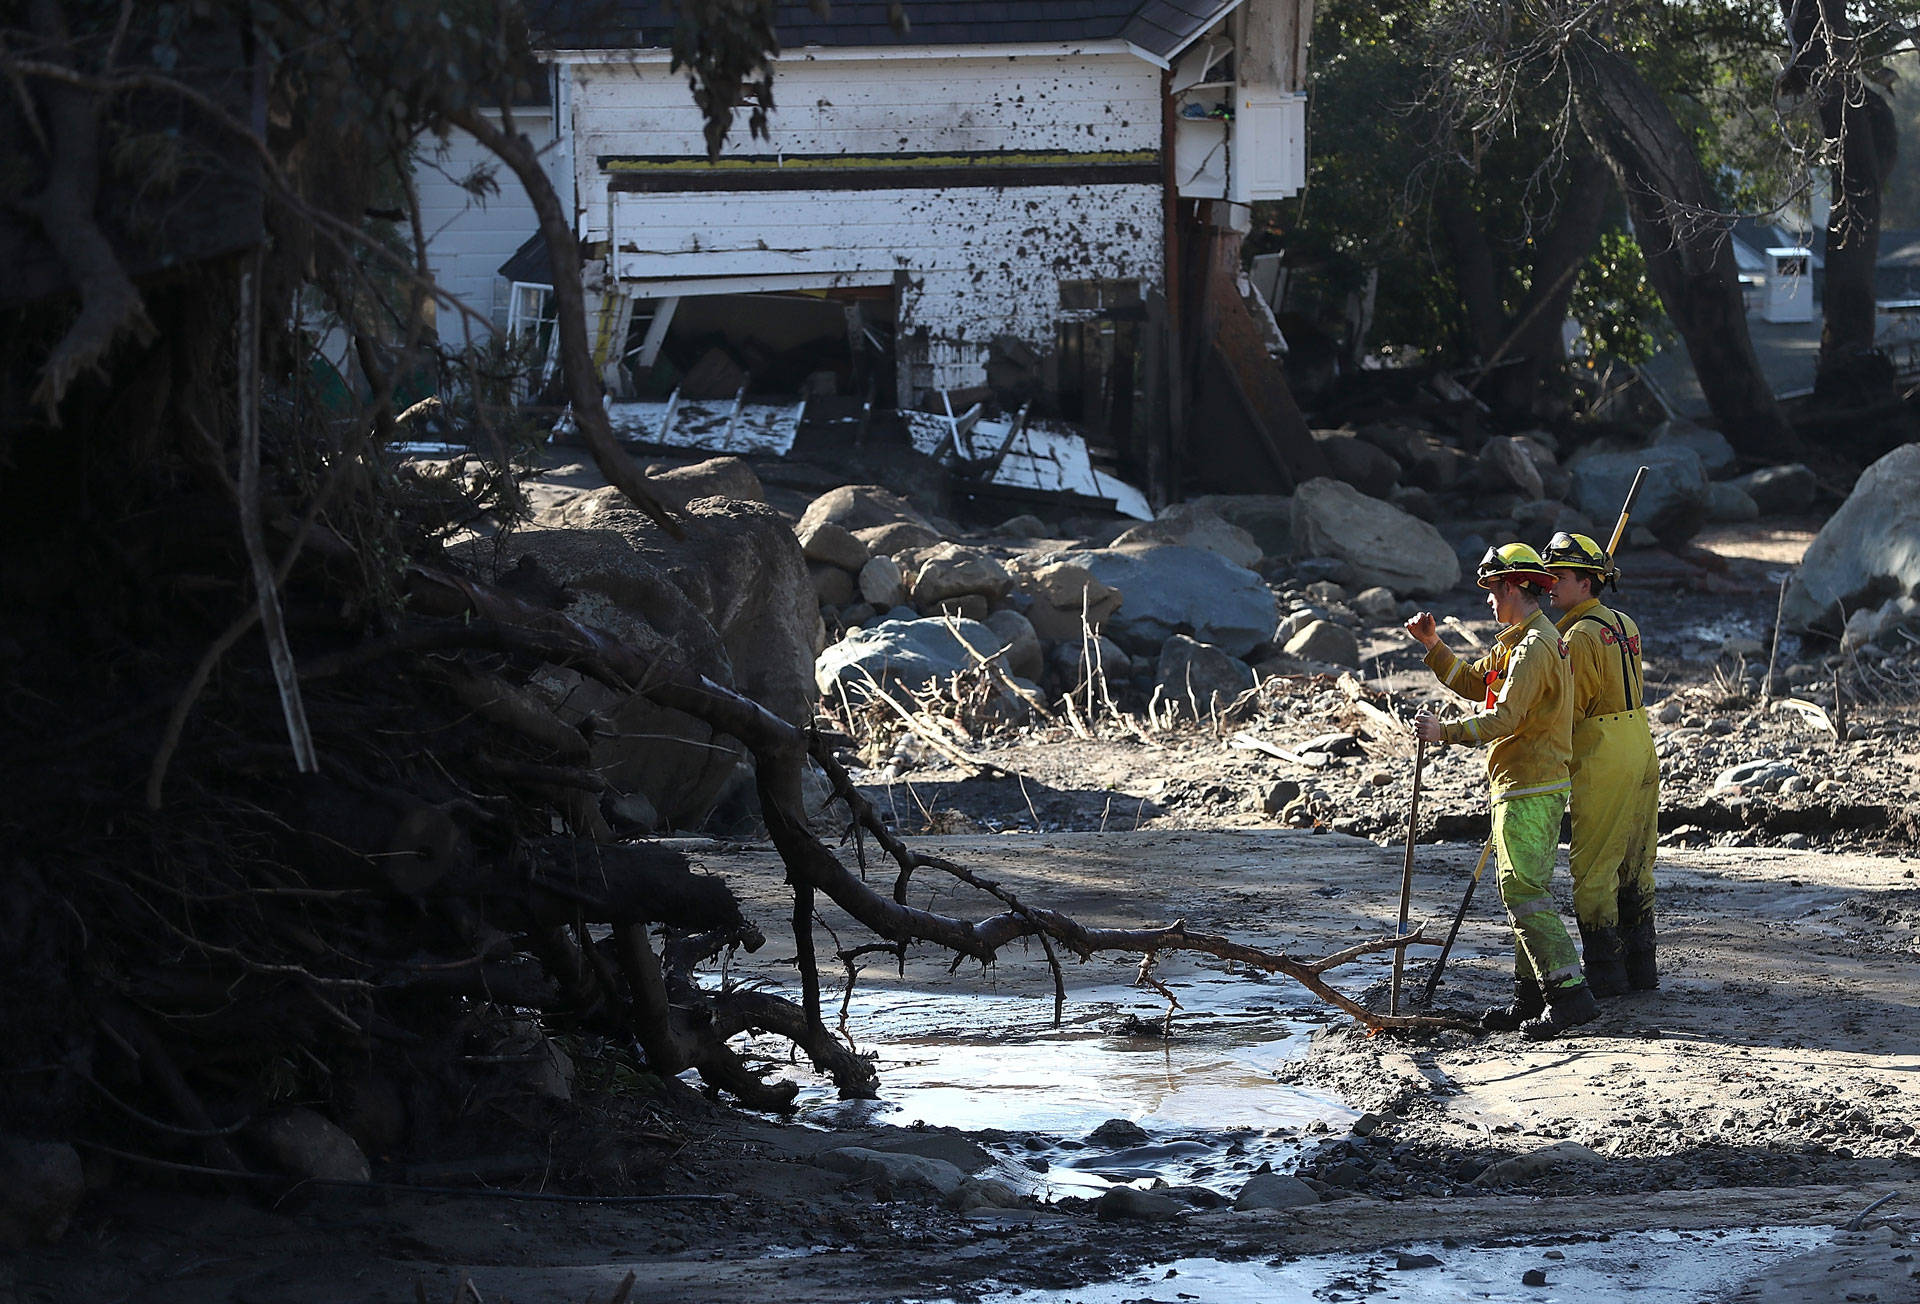 Crews Continue Painstaking Search Through Feet of Mud